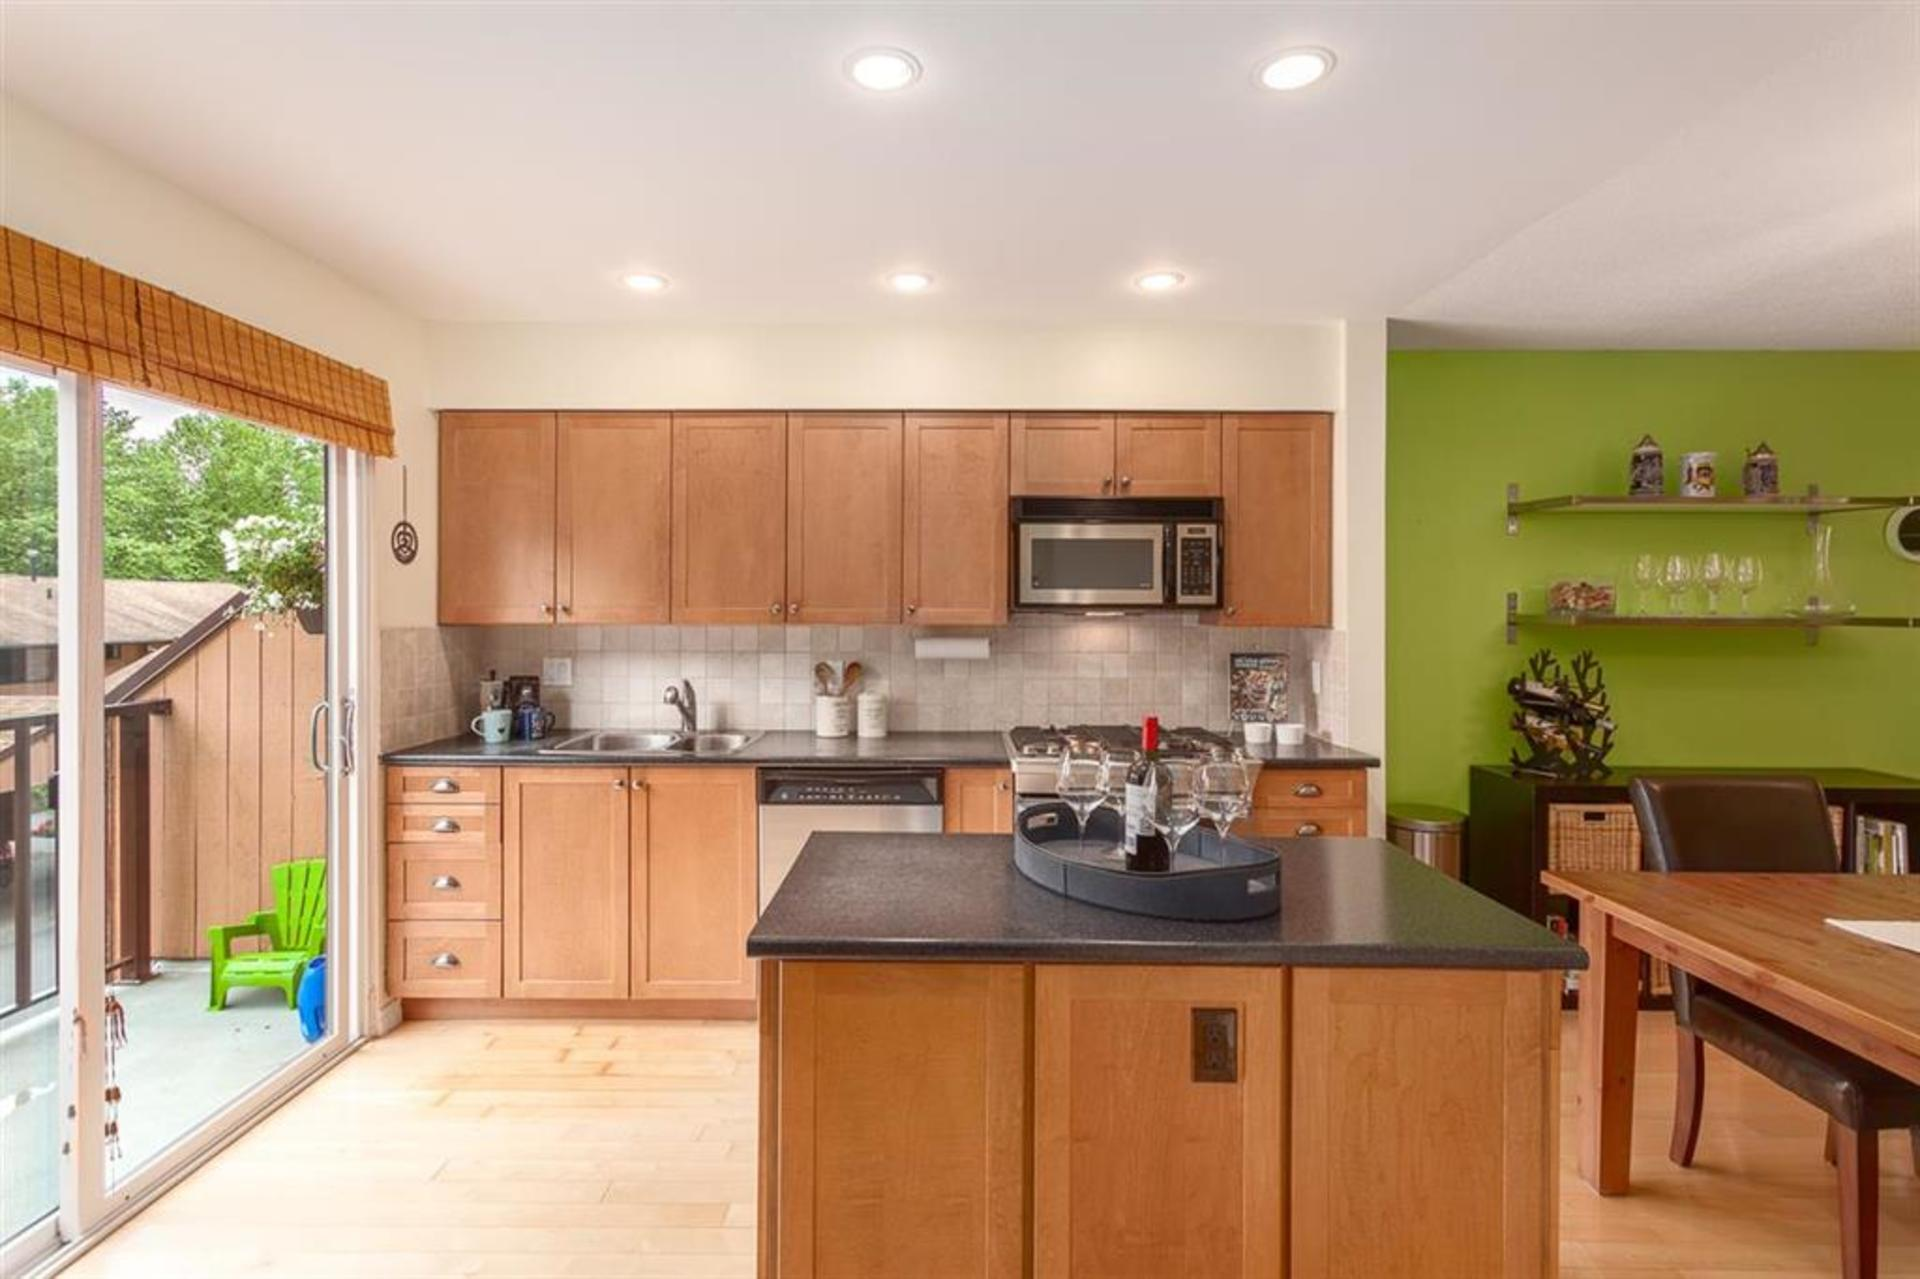 66f5cc5bfef2e532f64ded9fcf84fd71 at 1542 Mcnair Drive, Lynn Valley, North Vancouver